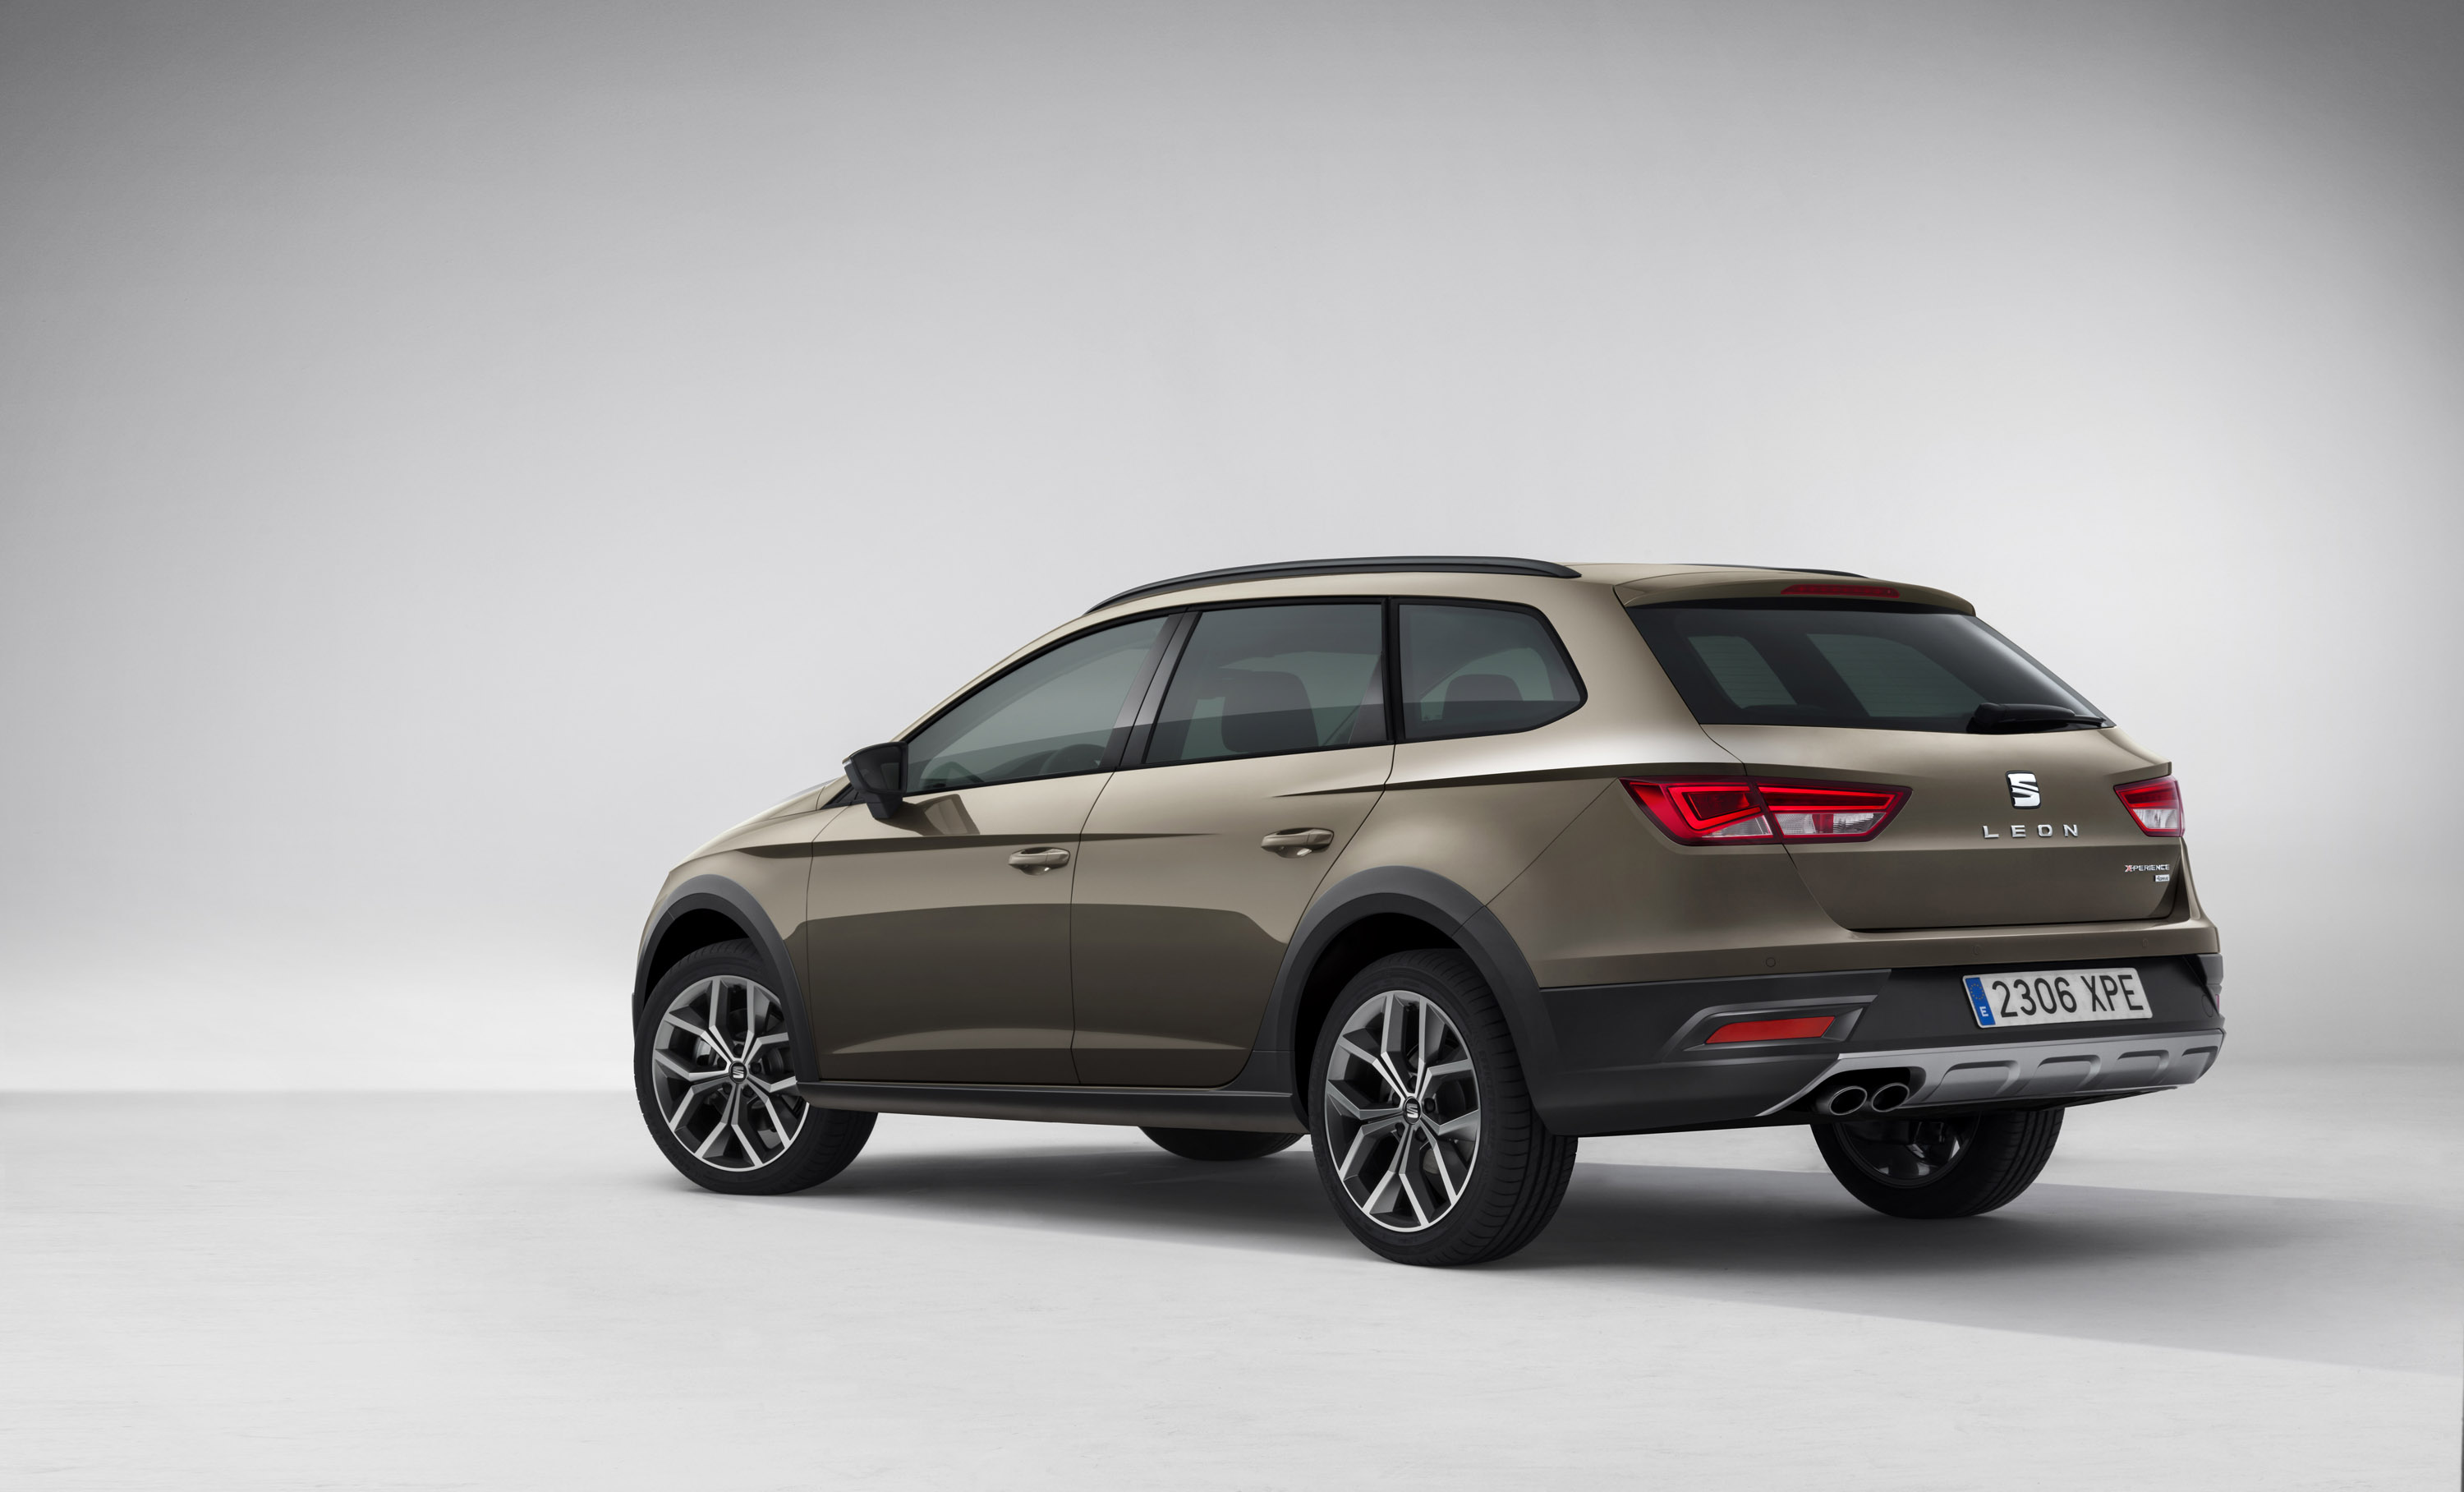 seat leon x perience pricing and specs announced. Black Bedroom Furniture Sets. Home Design Ideas